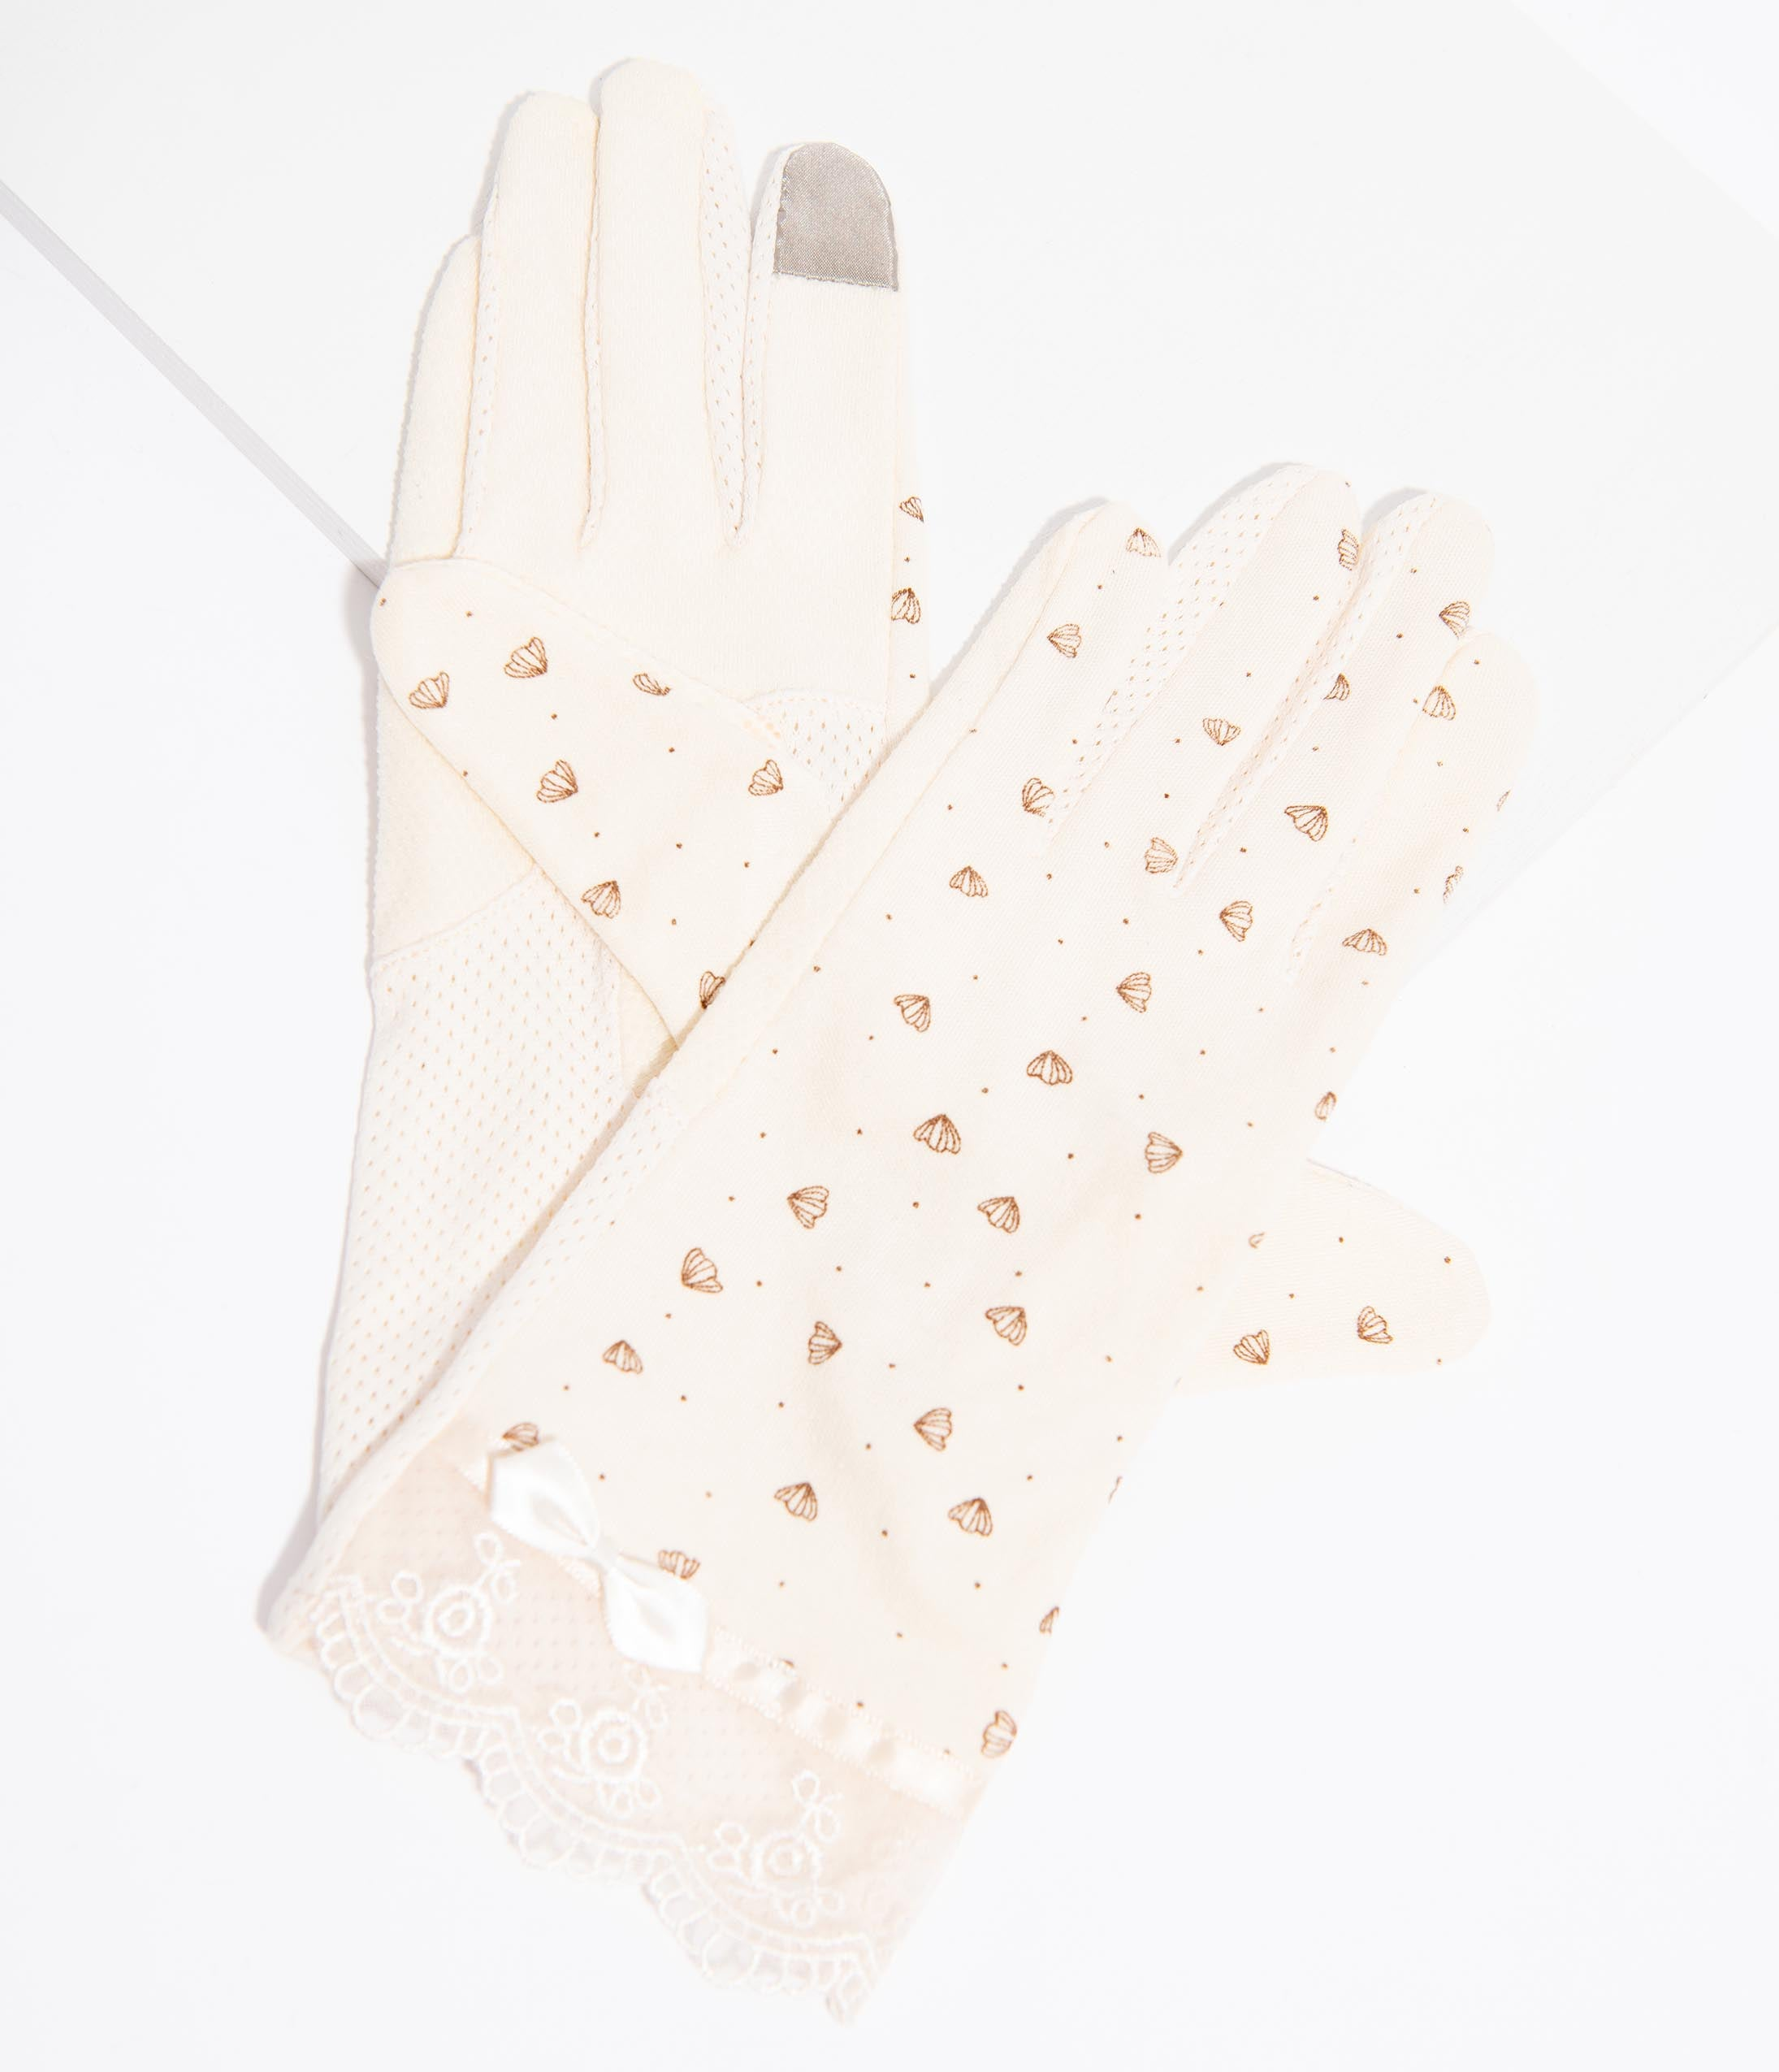 Vintage Style Gloves- Long, Wrist, Evening, Day, Leather, Lace Unique Vintage Cream Lace  Petal Print Gloves $24.00 AT vintagedancer.com